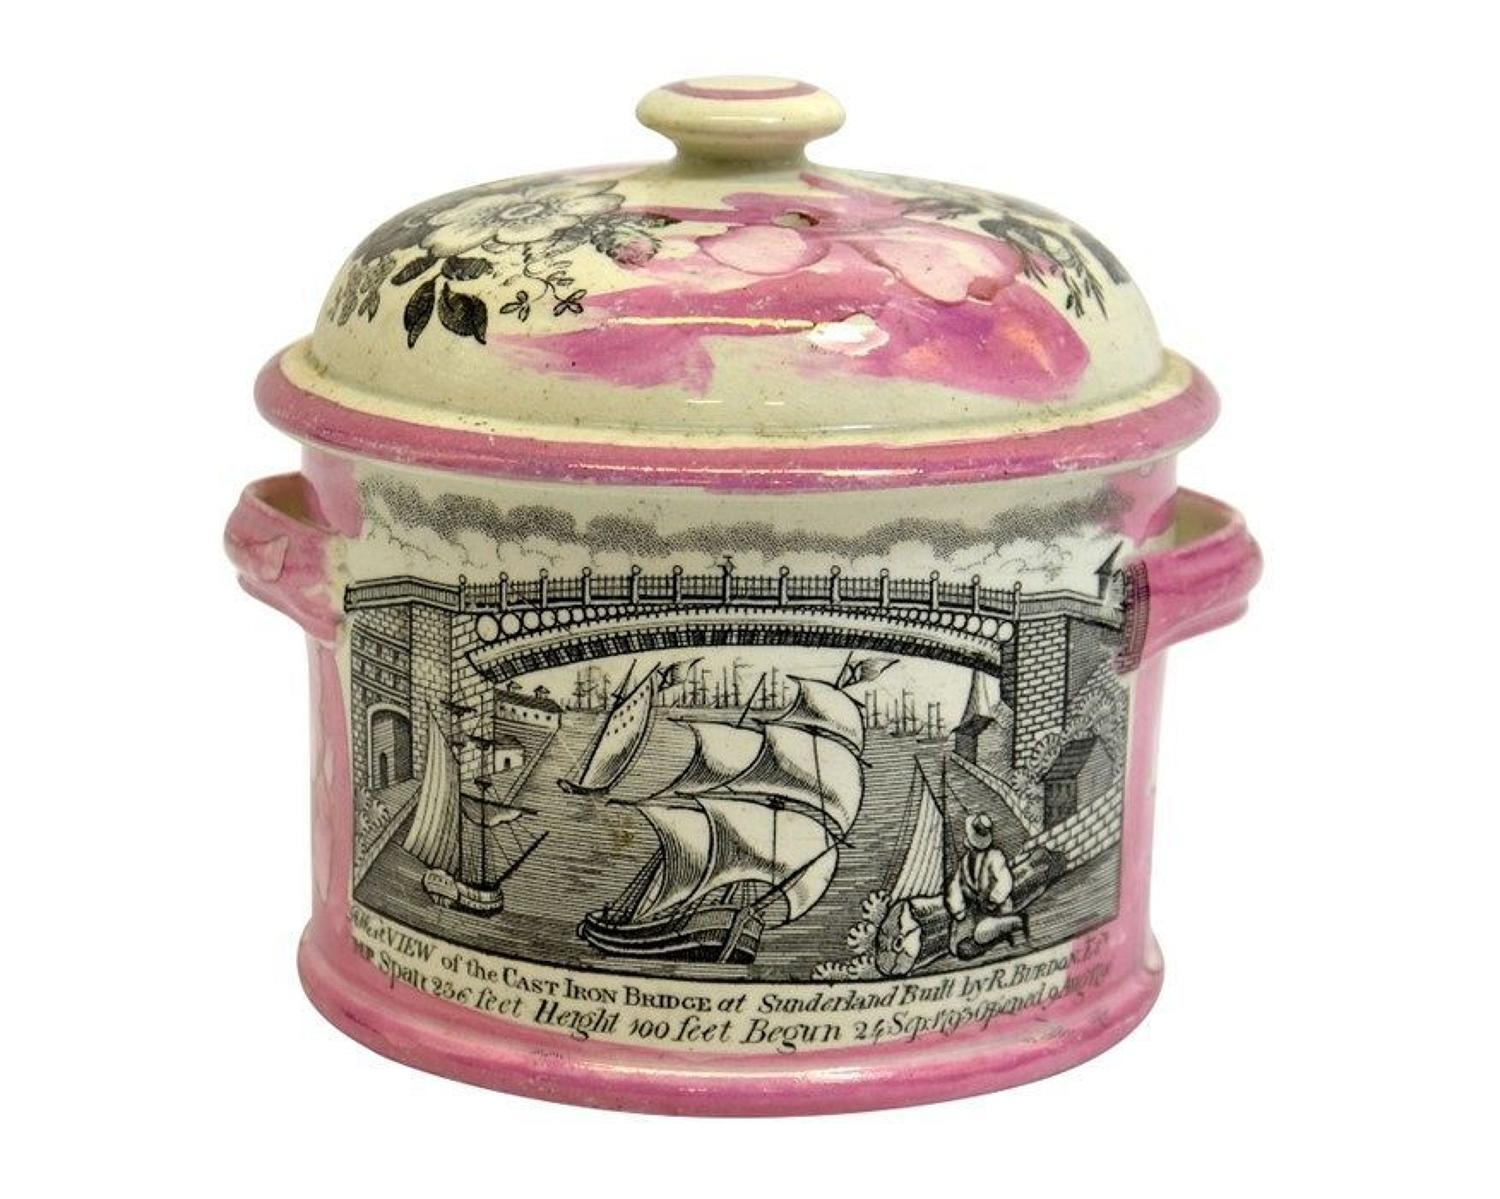 Early 19th Century Sunderland lustre pot and cover